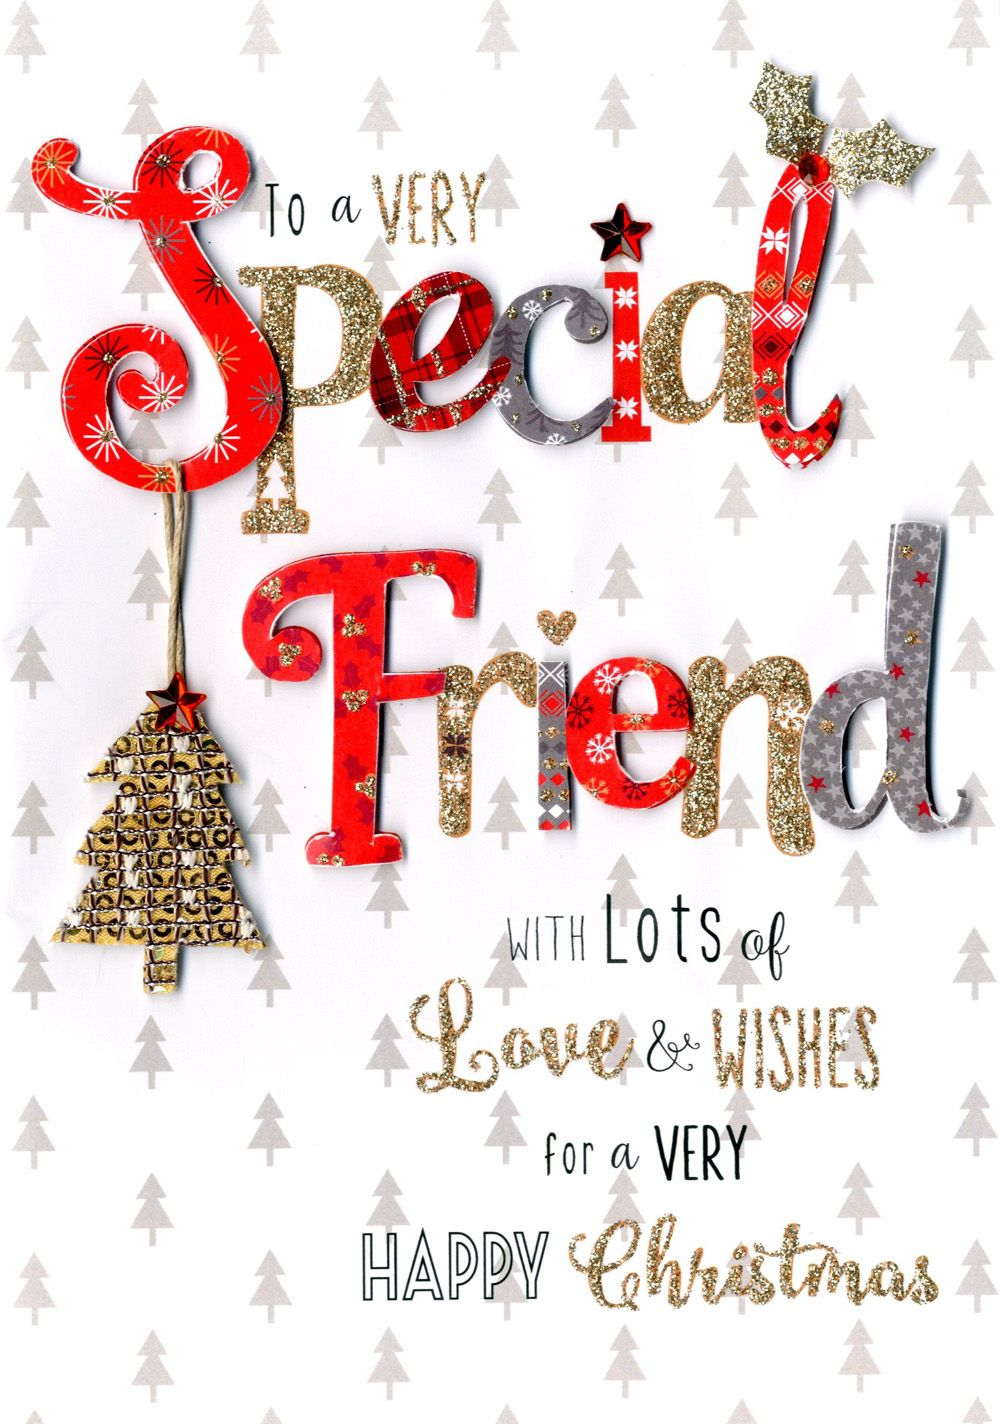 30 Christmas Greetings For A Friend To Make Them Happy Some Events Christmas Greetings For Friends Christmas Greetings Christmas Wishes Messages